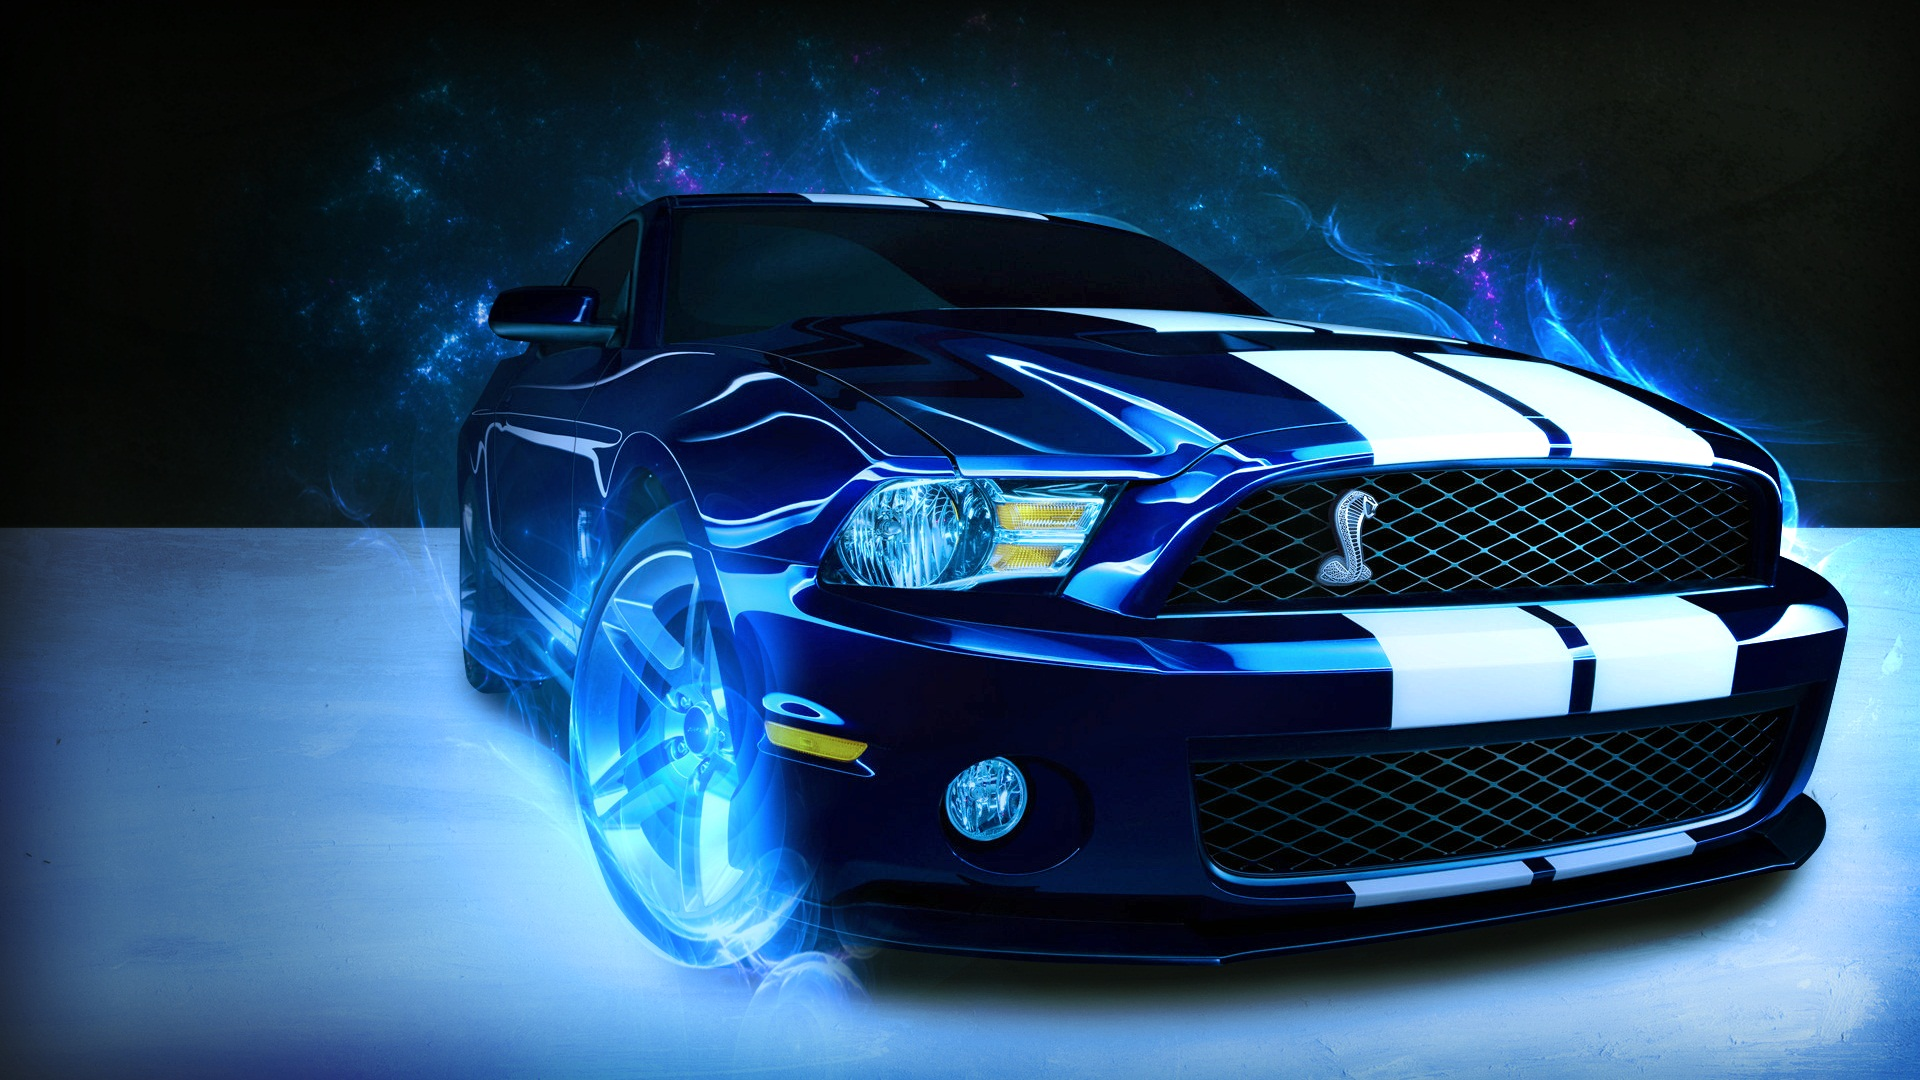 Shelby Mustang Wallpaper Hd (3)